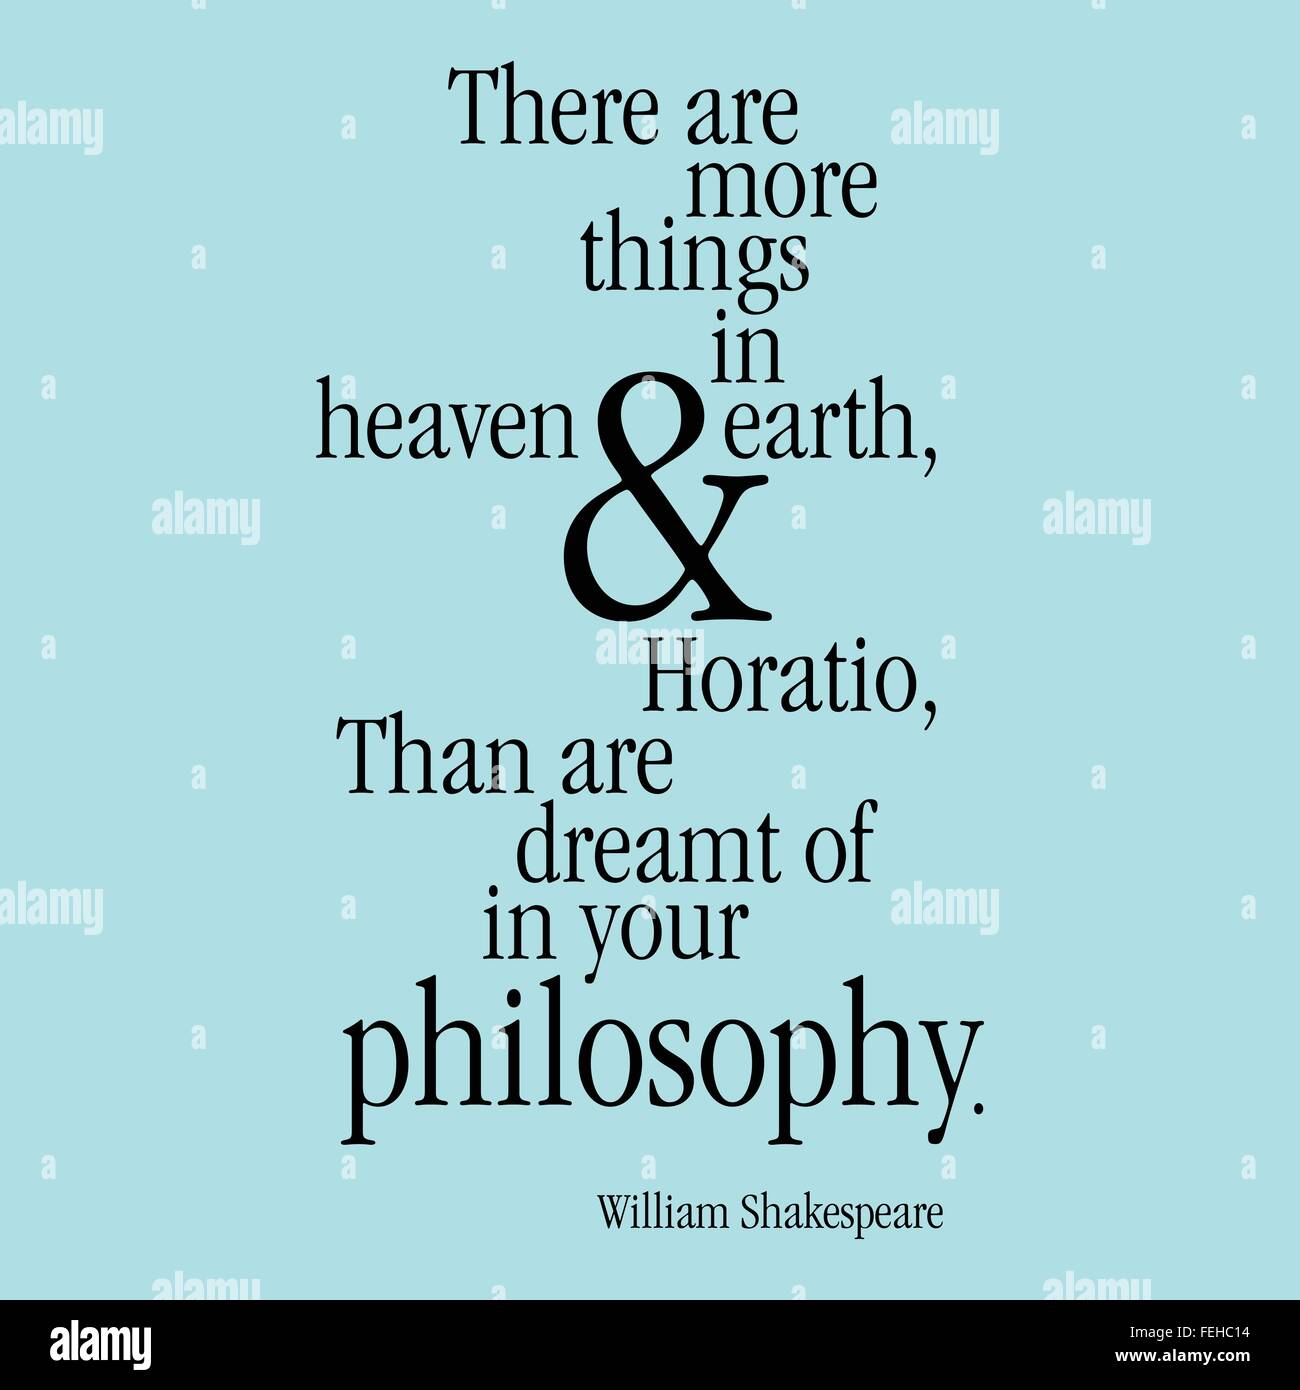 There Are More Things In Heaven And >> There Are More Things In Heaven And Earth Horatio Than Are Dreamt